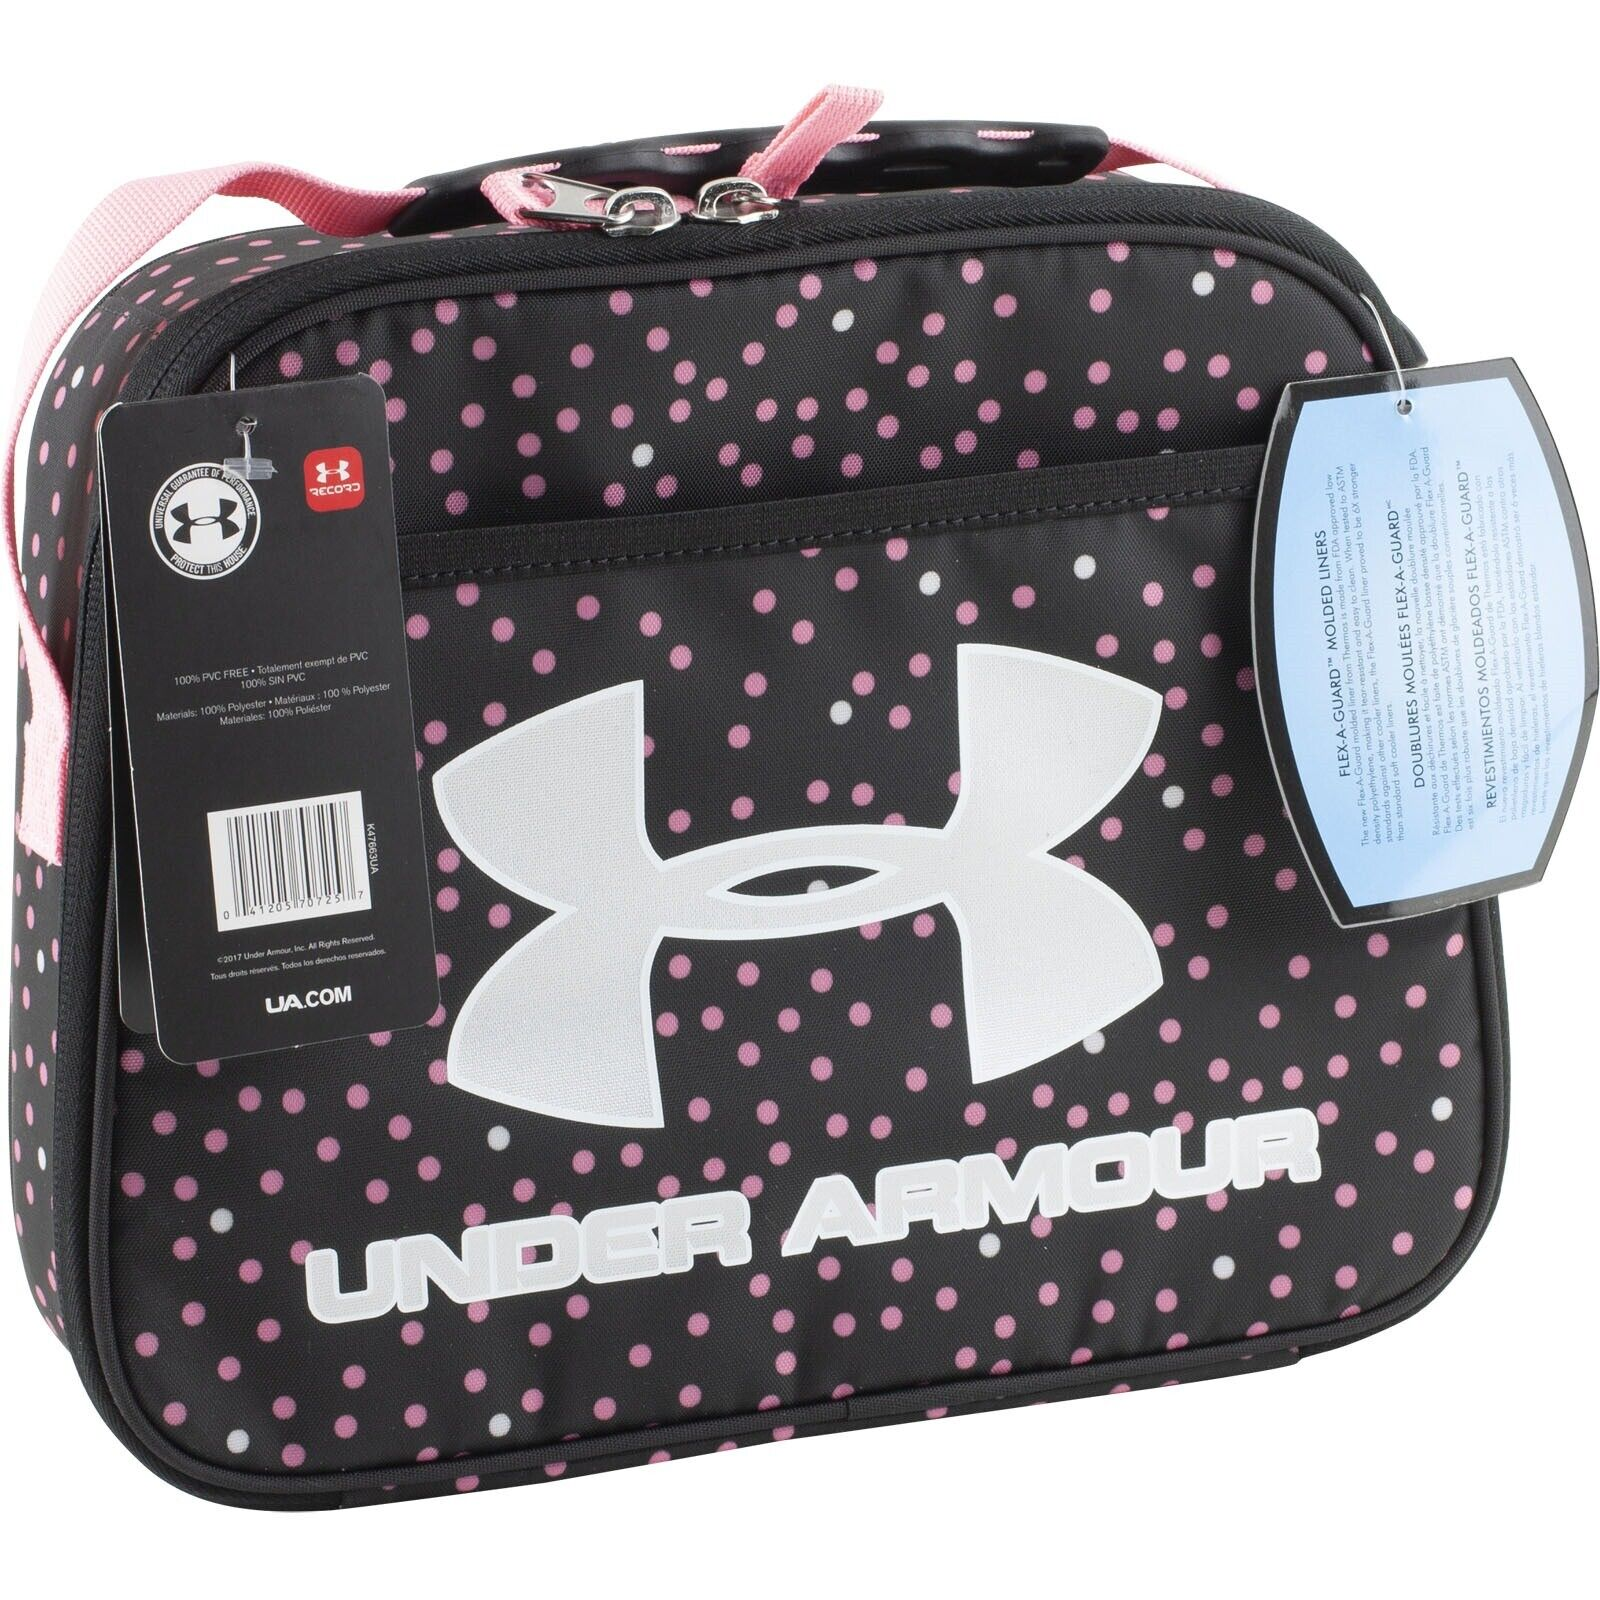 Under Armour Insulated Lunch Box Thermos Flex a Guard Pink P